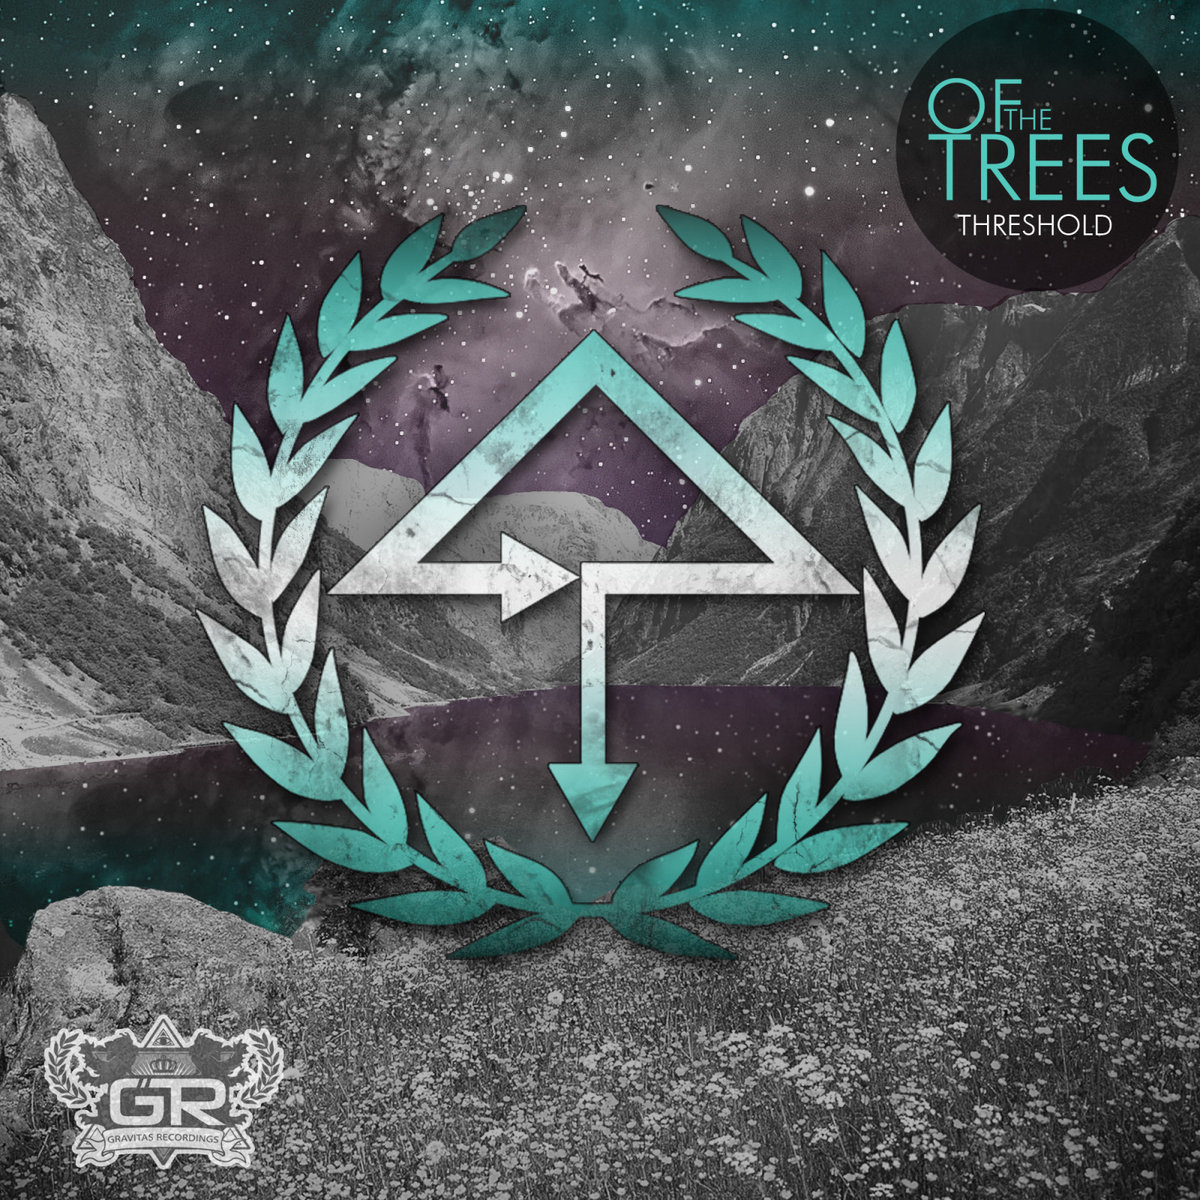 Of The Trees - Radiogenic @ 'Threshold' album (808, dope music)